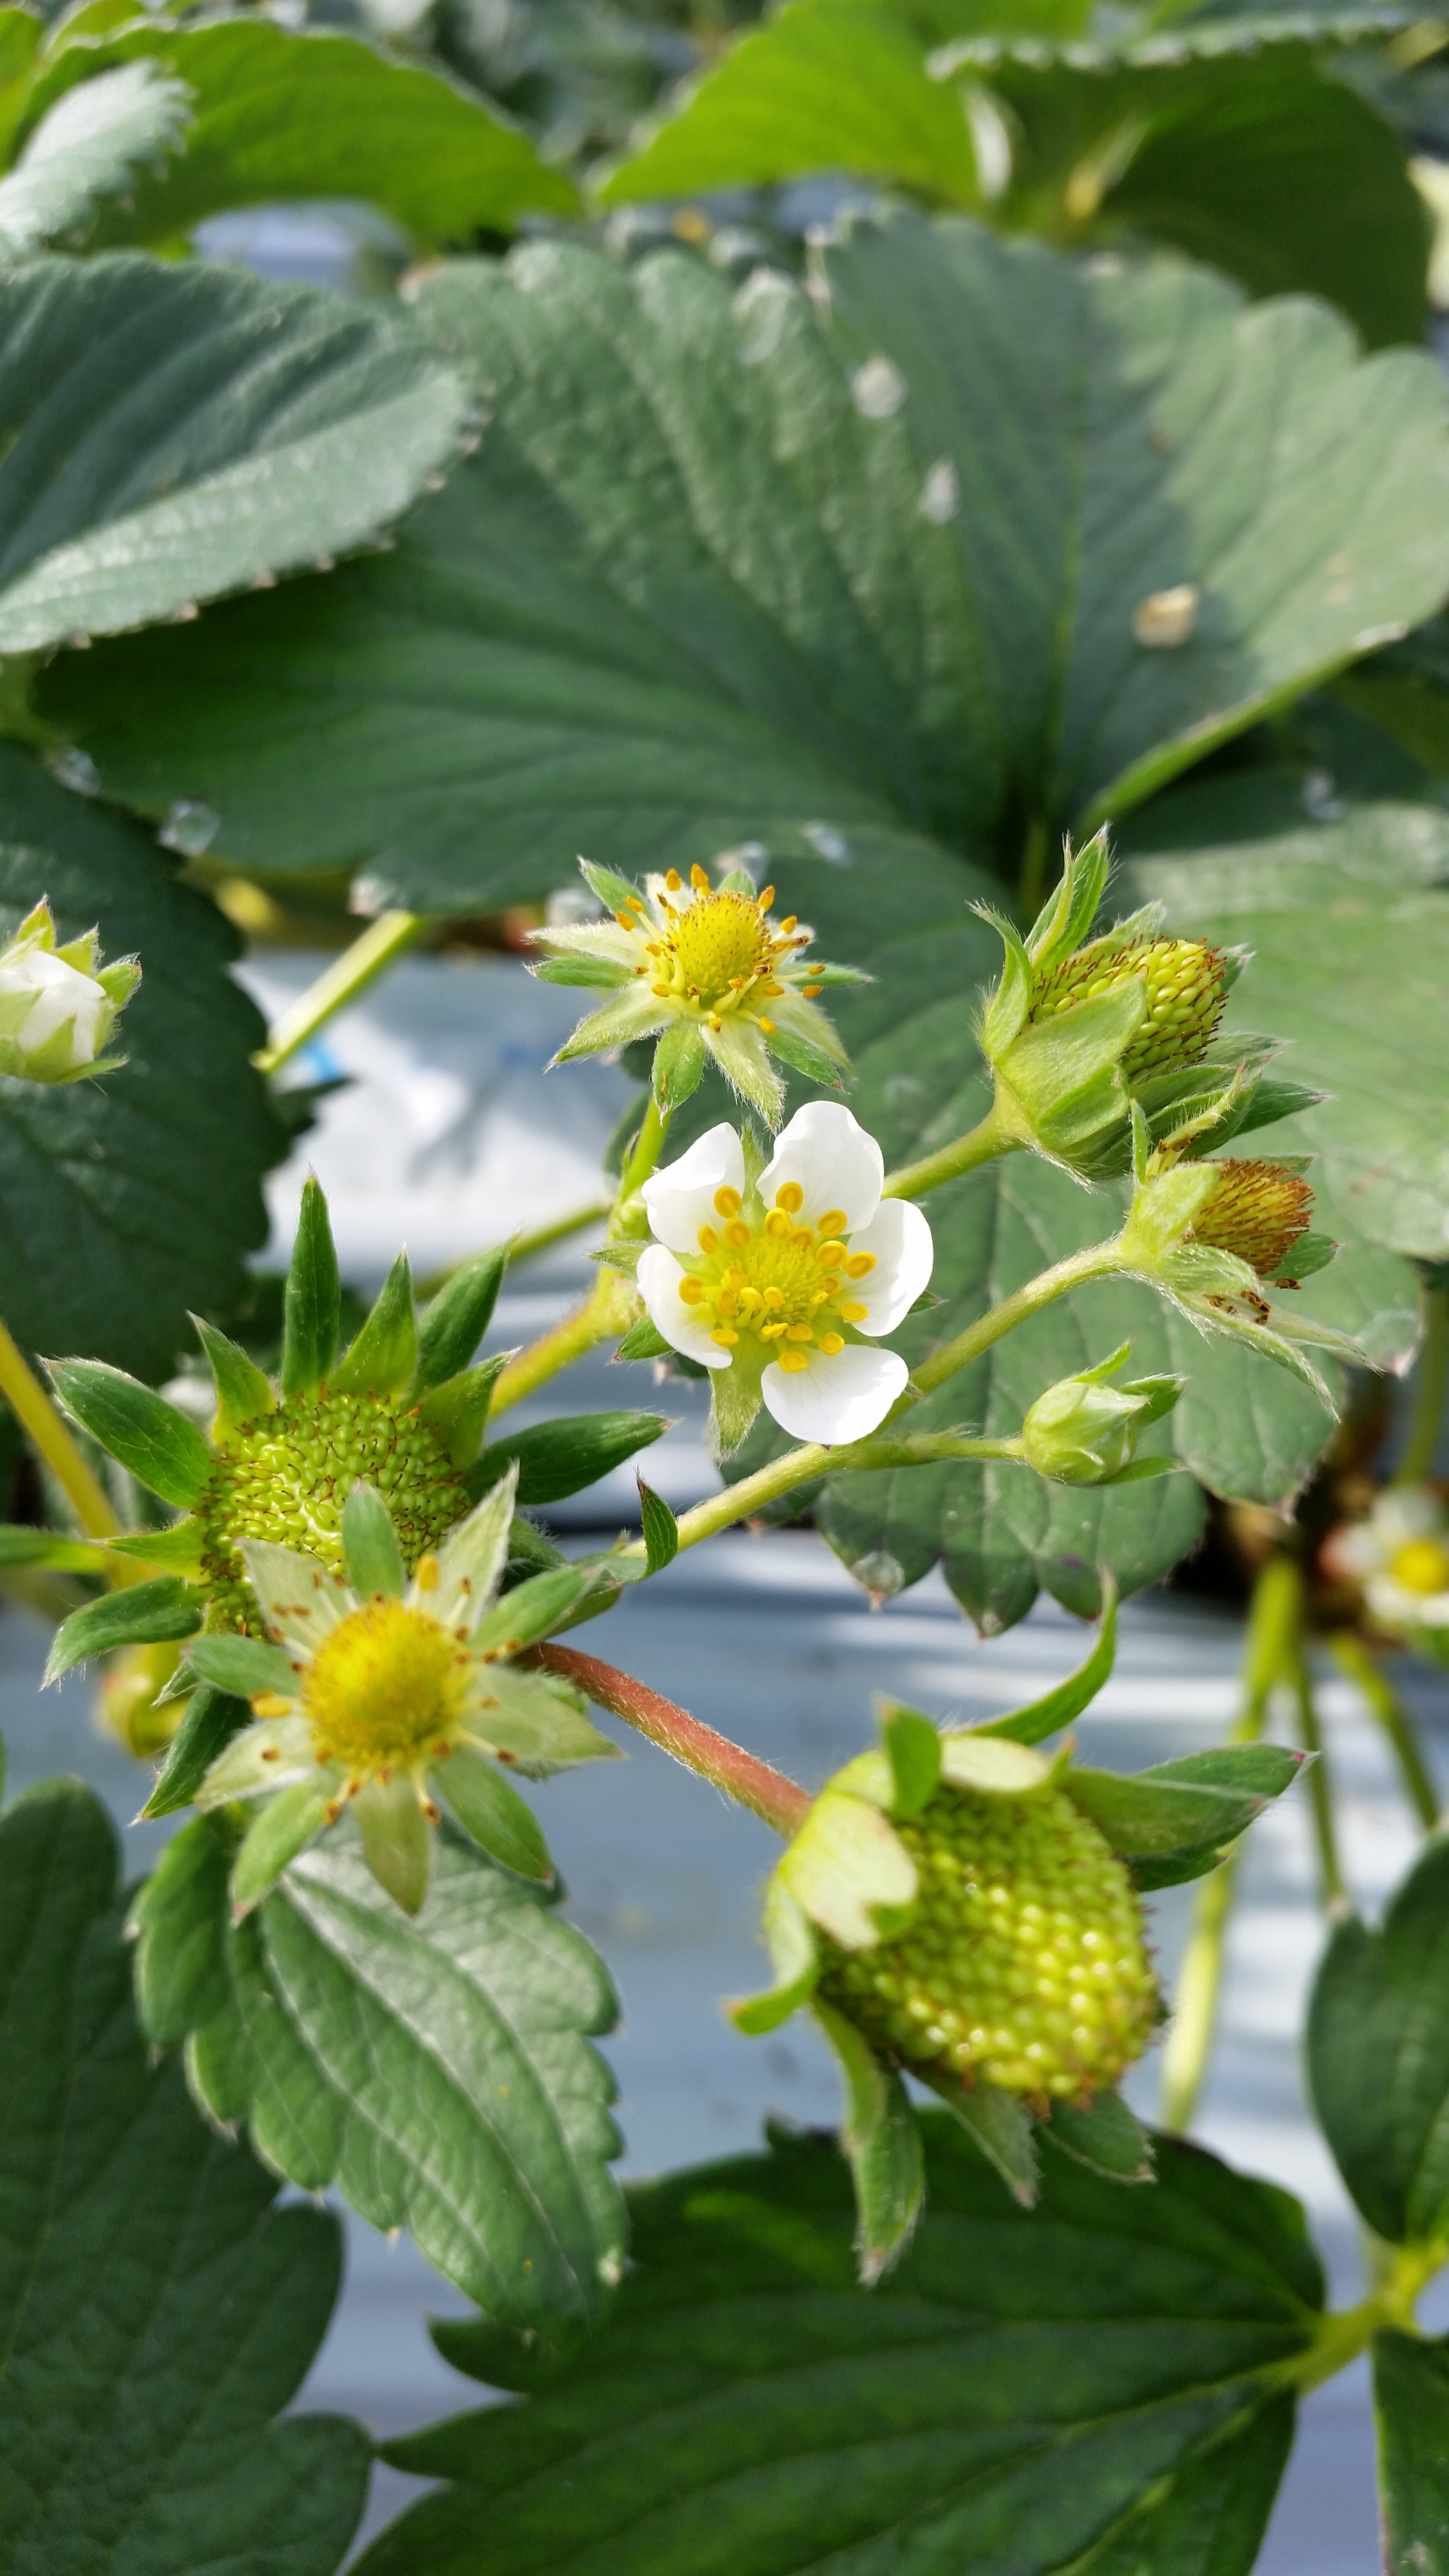 Flower,Receptacle of the strawberry   present4_u, agriculture, bloom, blur